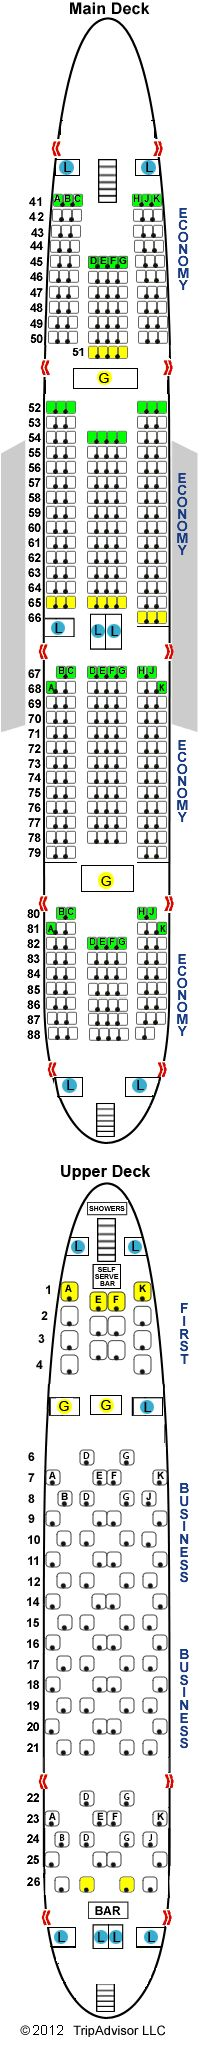 Lufthansa Airlines Airbus A380 800 Airline Seating Map